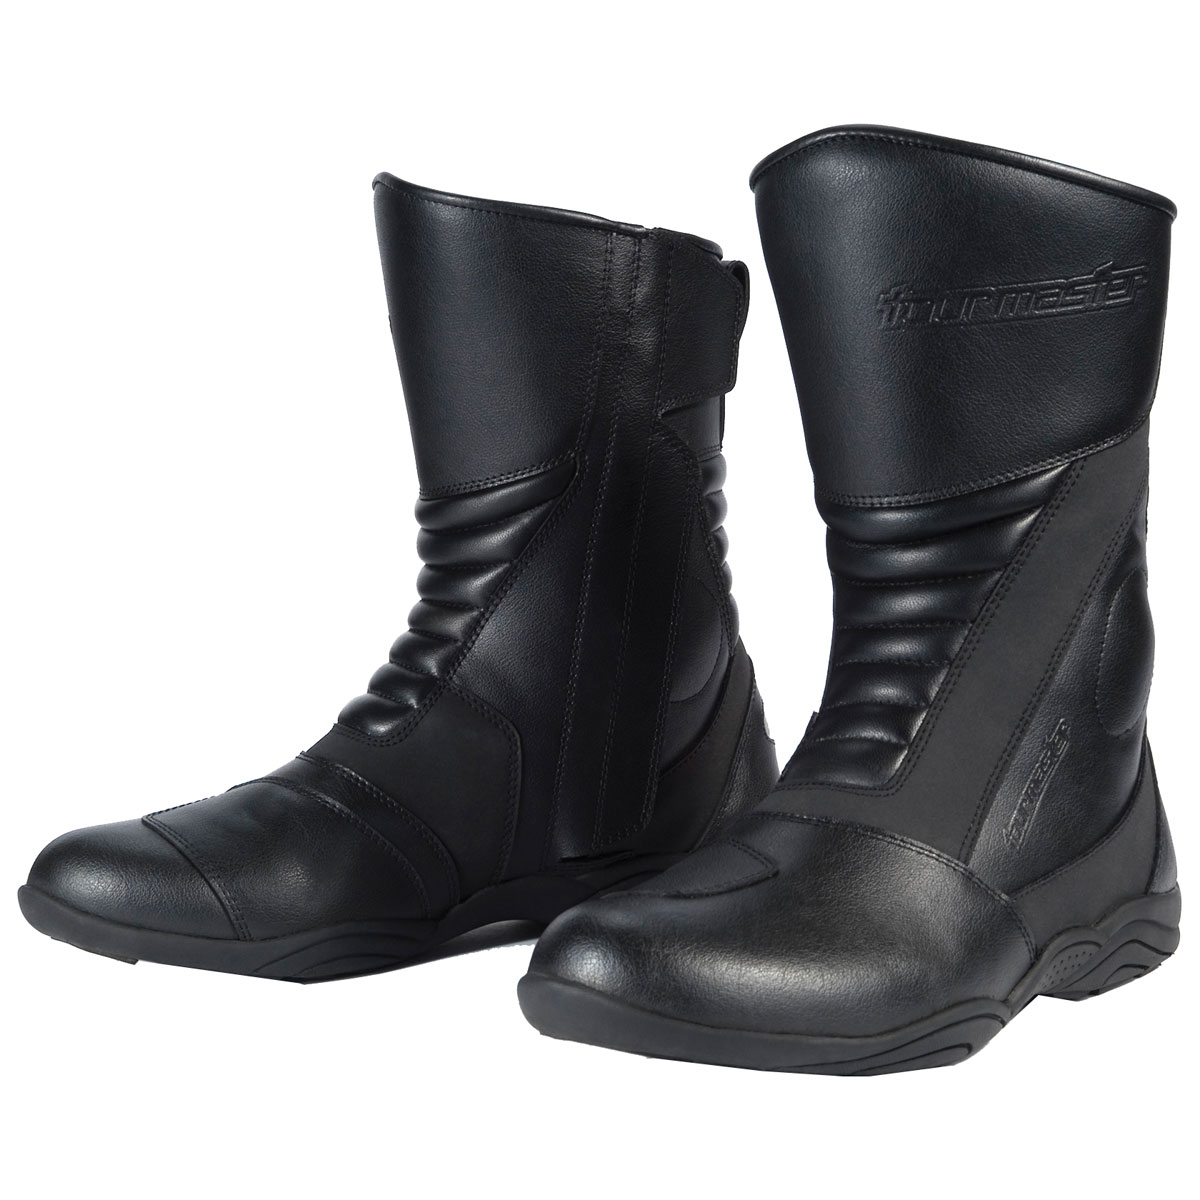 Tour Master Women's Solution Waterproof 2.0 Black Boots